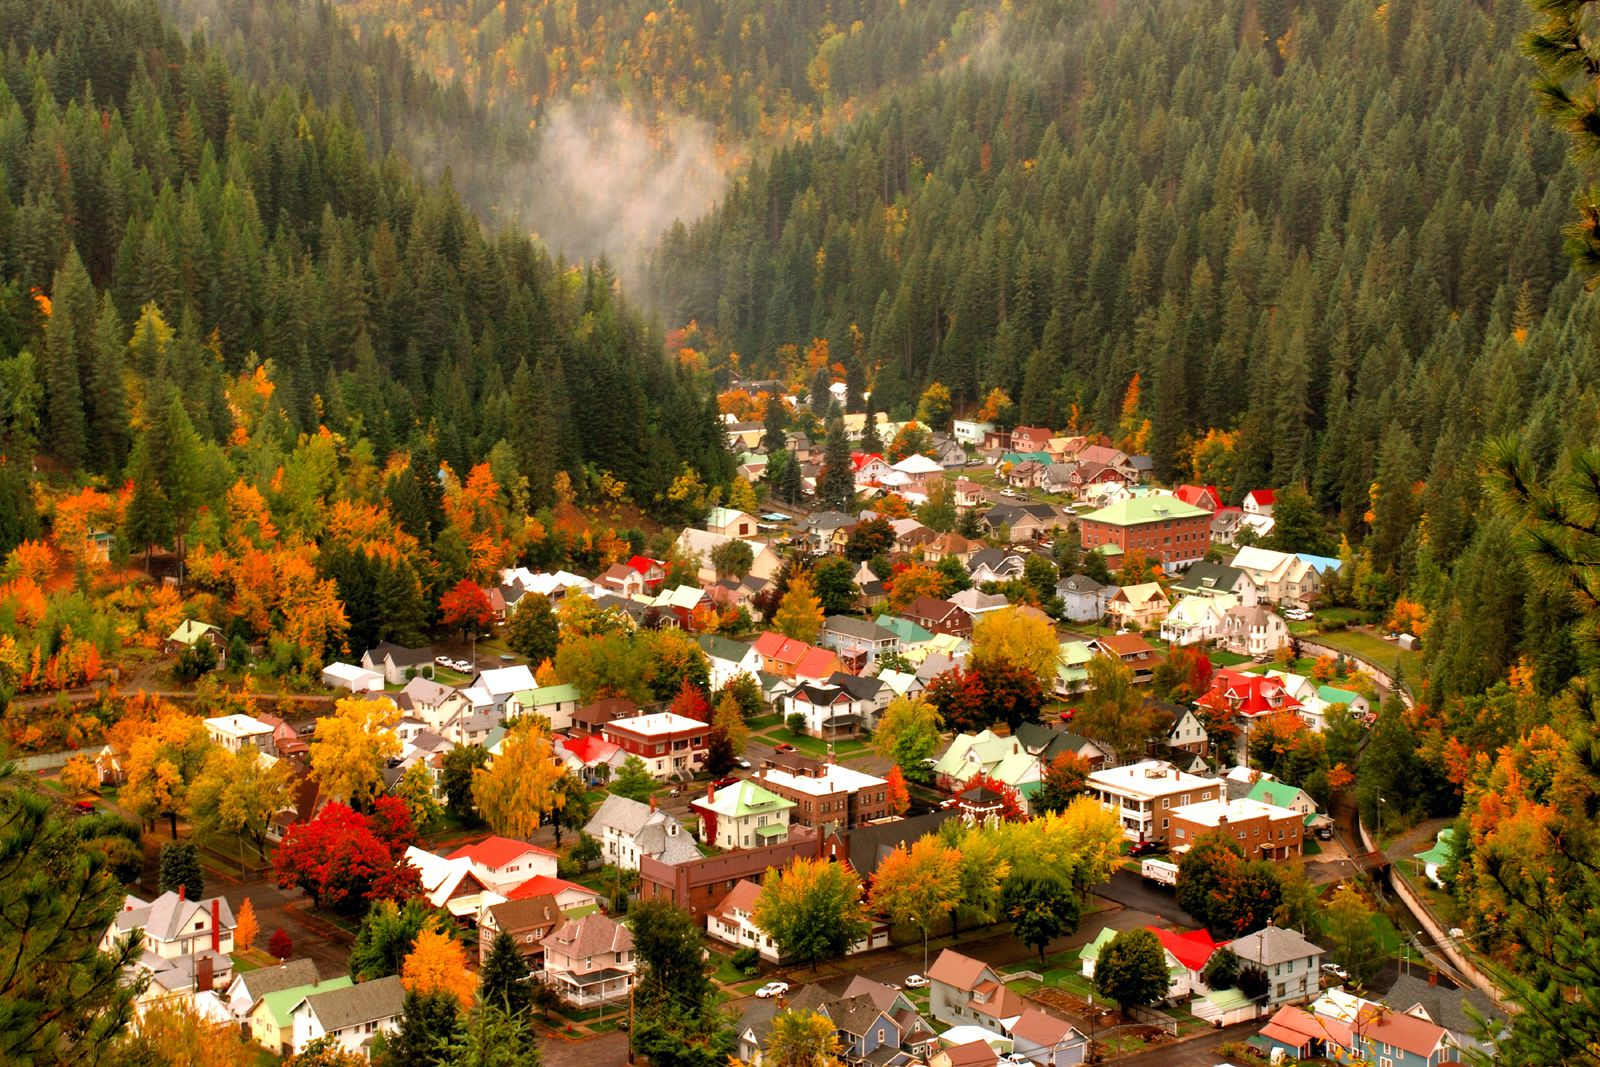 Wallace Idaho in the fall Whatttt. Why did I live in this state and not